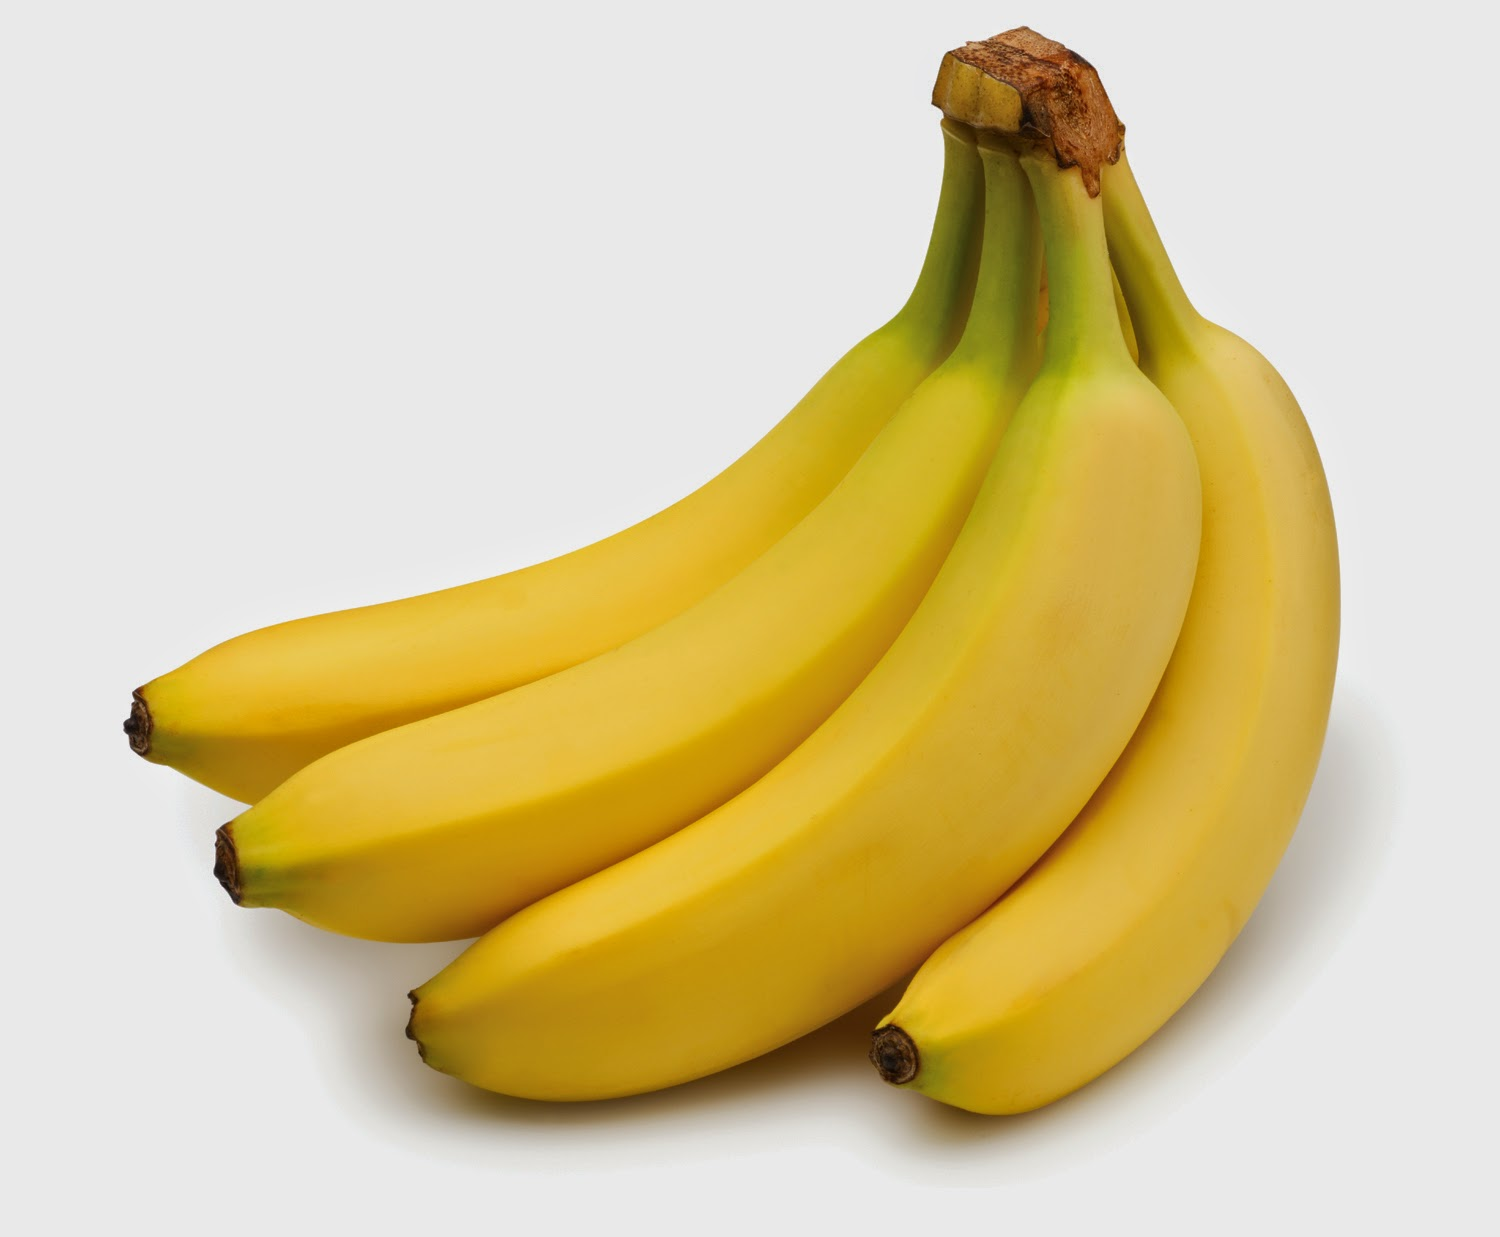 Benefits And Nutrition Of Banana For Health